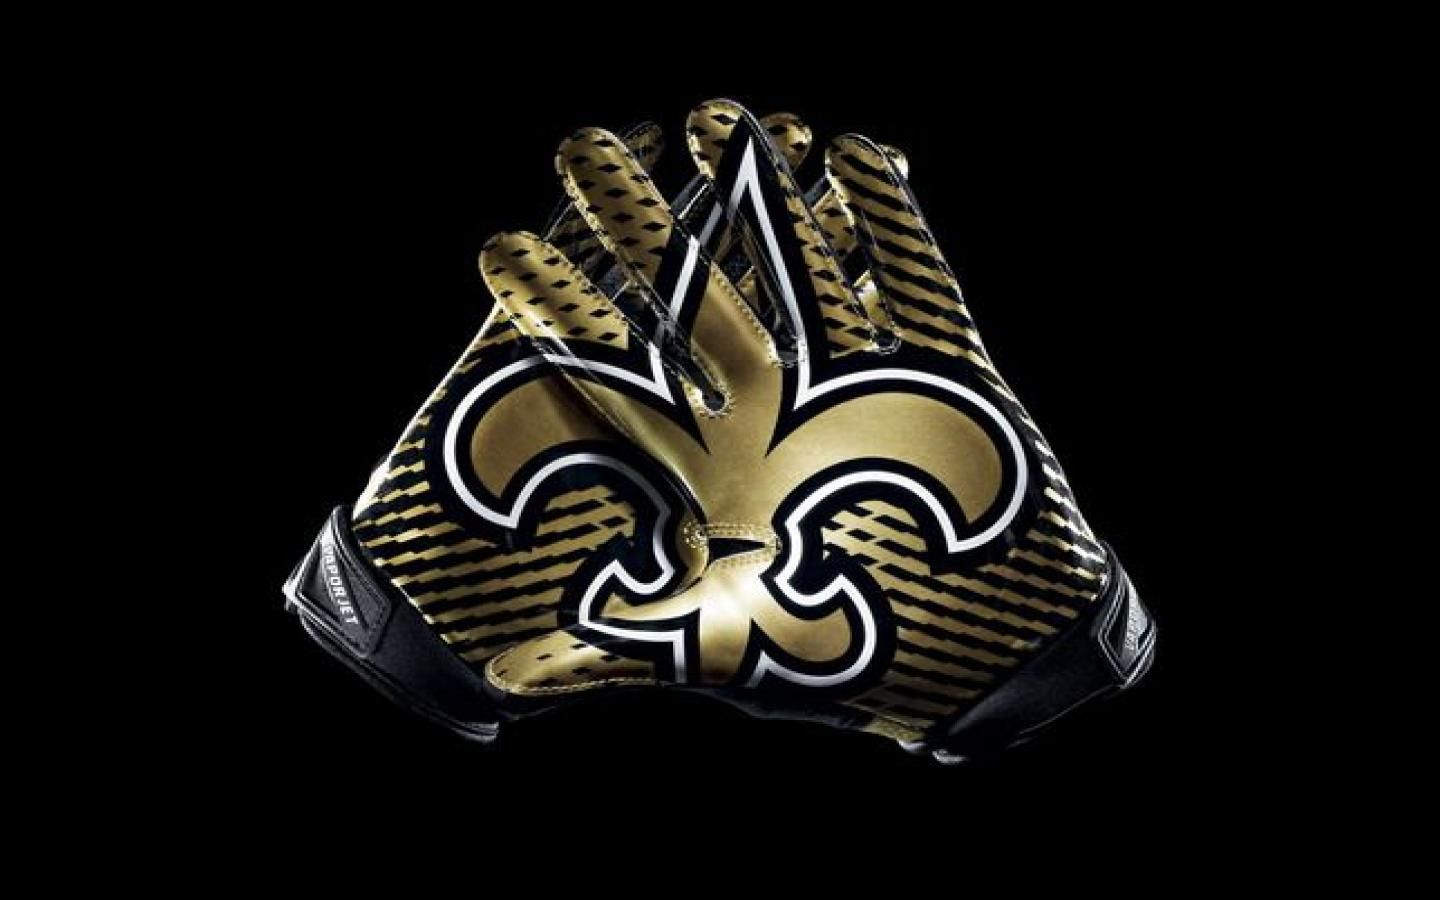 New Orleans Saints Wallpapers Top Free New Orleans Saints